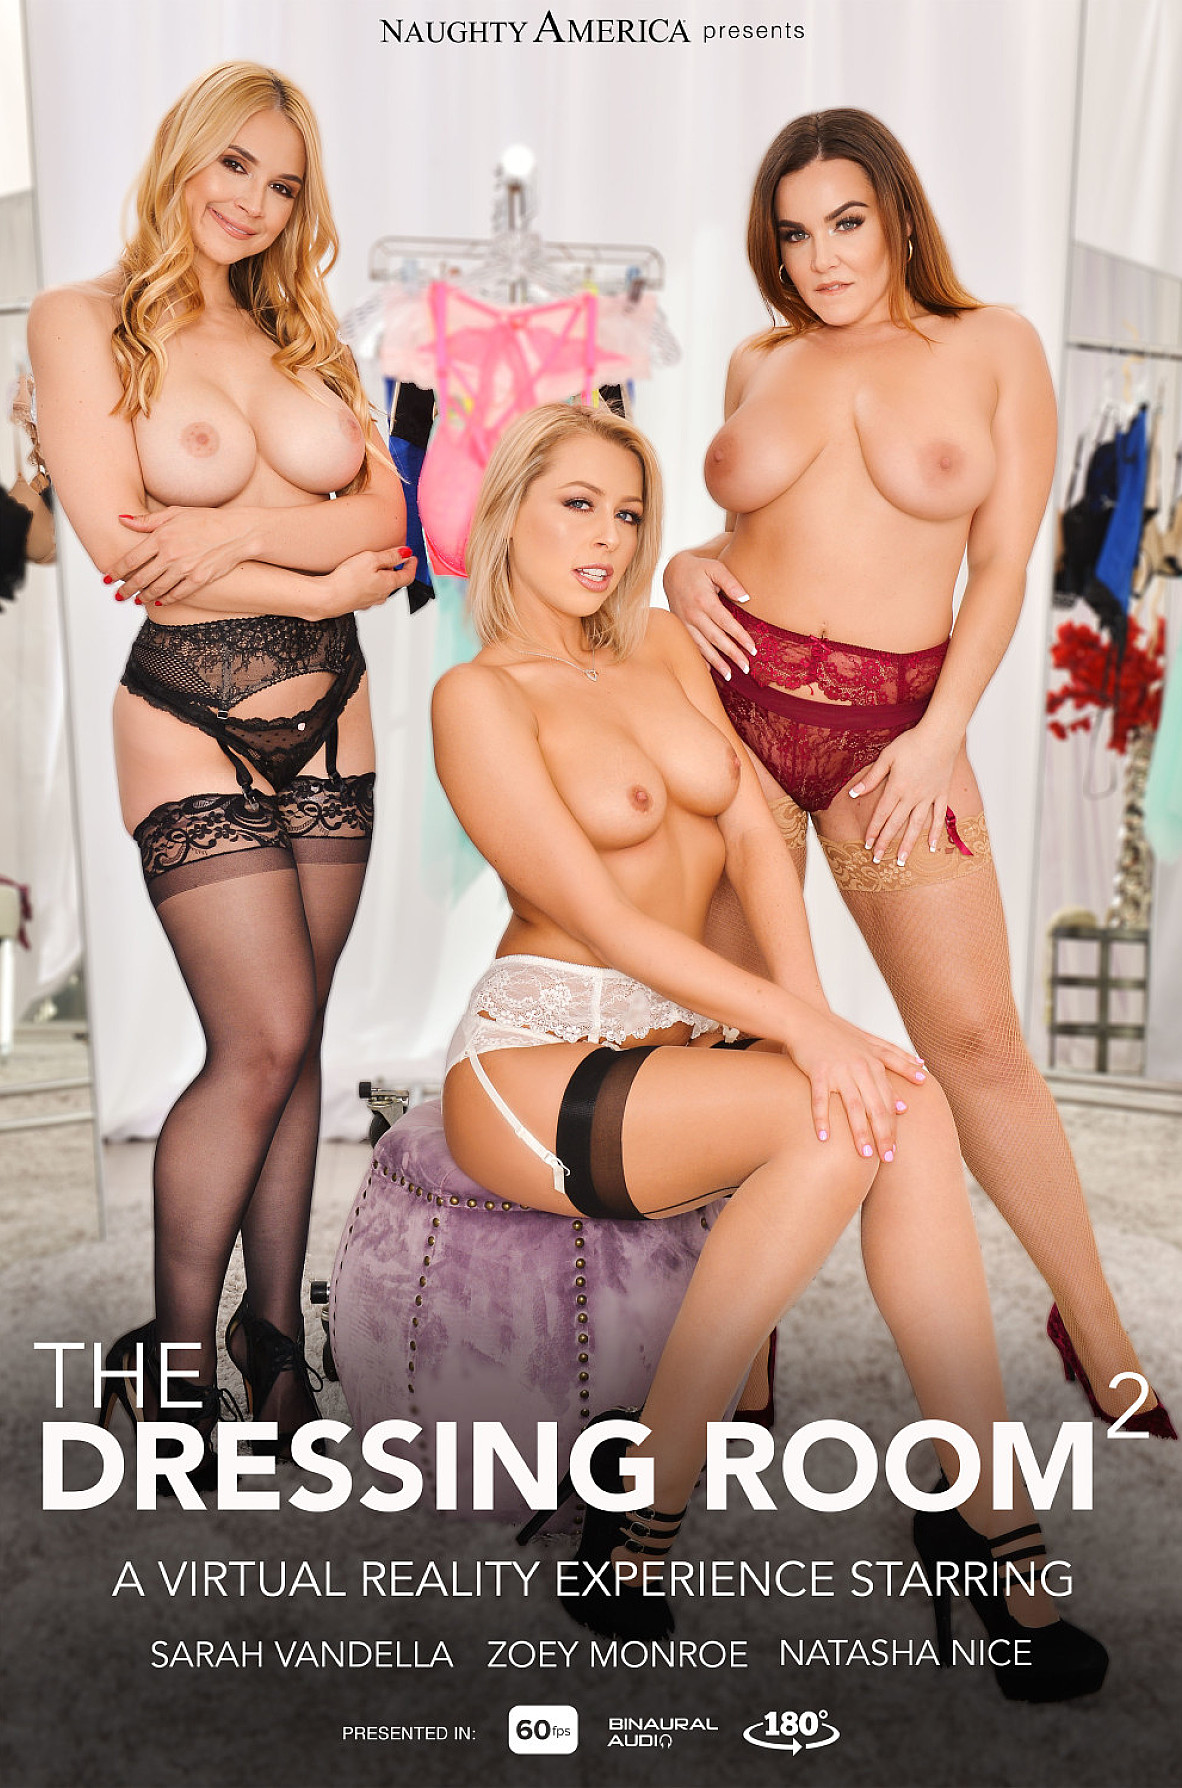 Watch Natasha Nice, Sarah Vandella, Zoey Monroe and Johnny Castle VR video in Naughty America